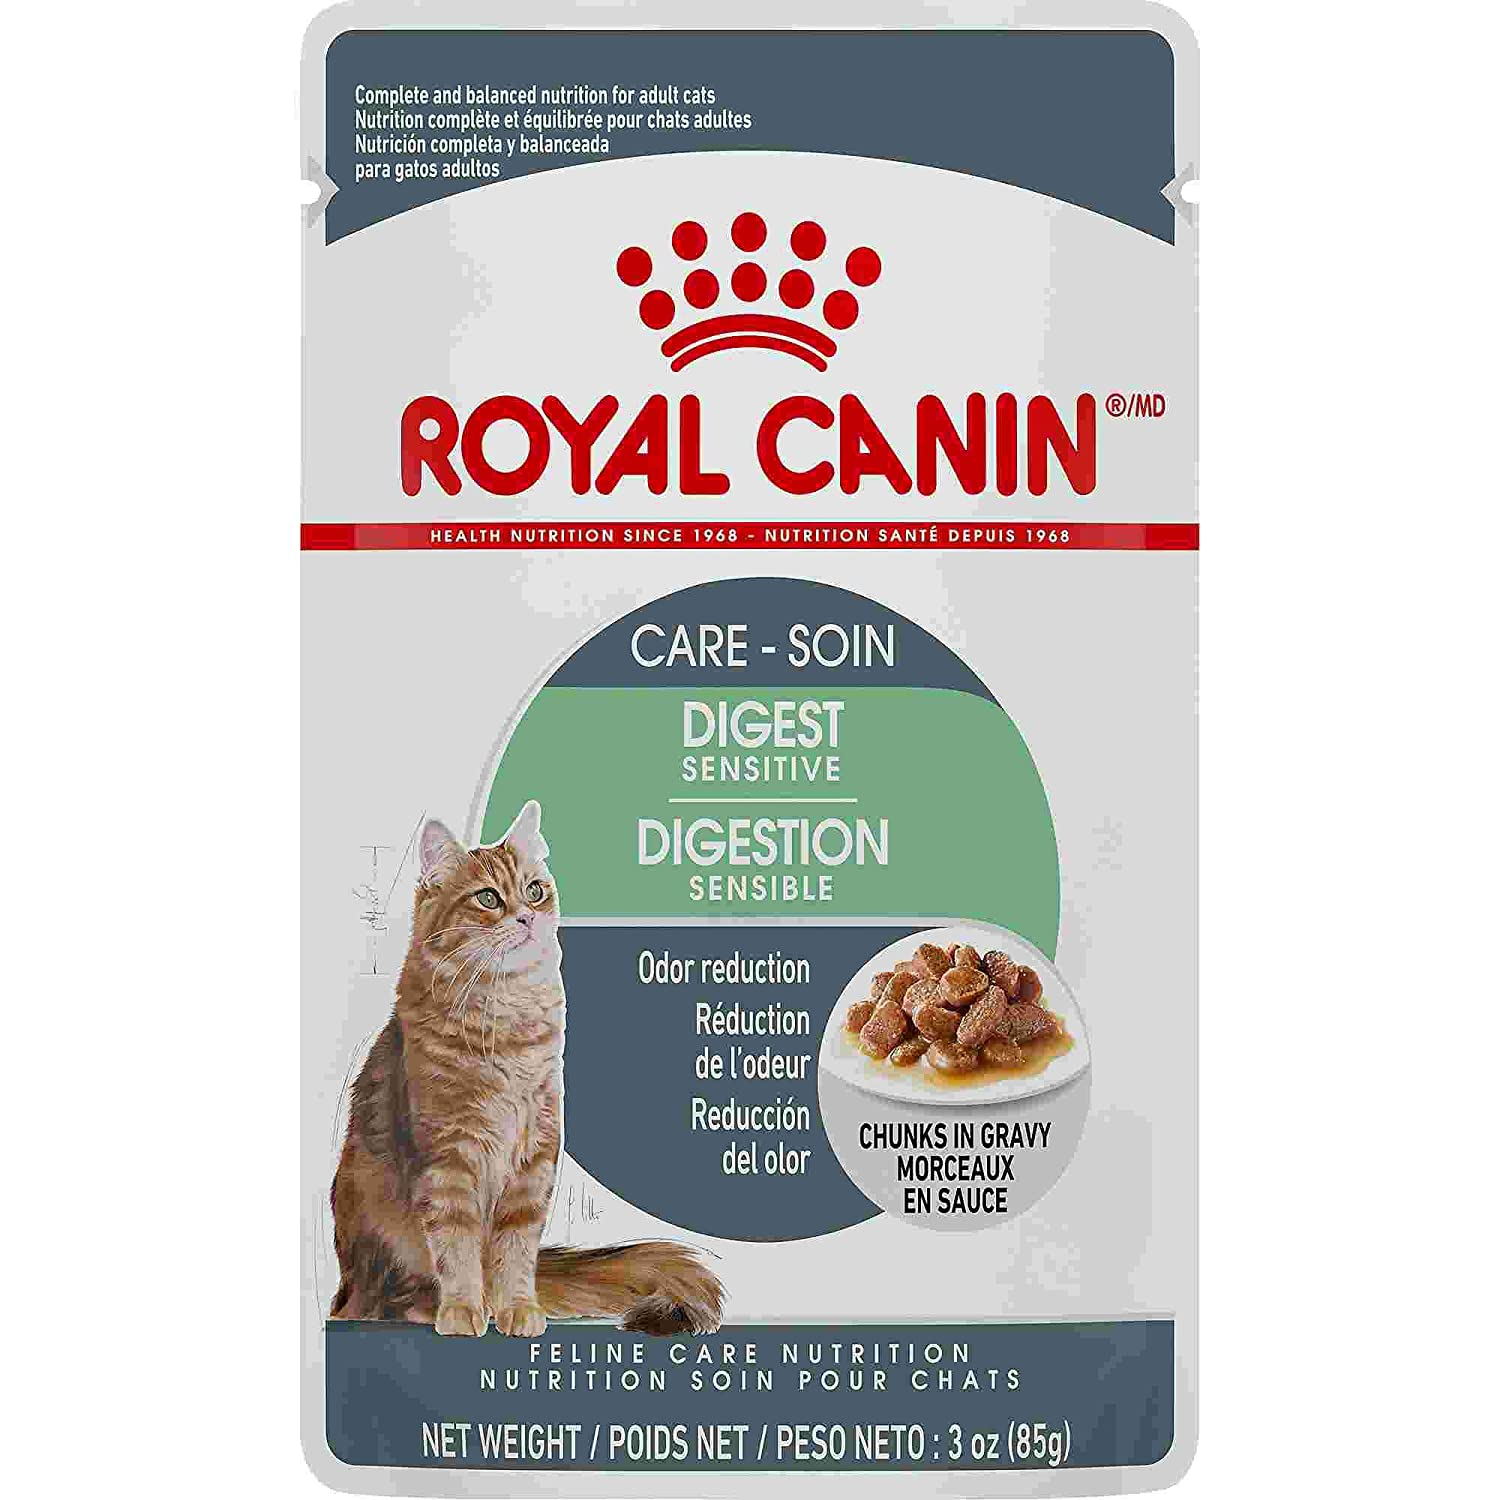 Royal Canin Digest Sensitive Chunks in Gravy Adult Wet Cat Food Pouch